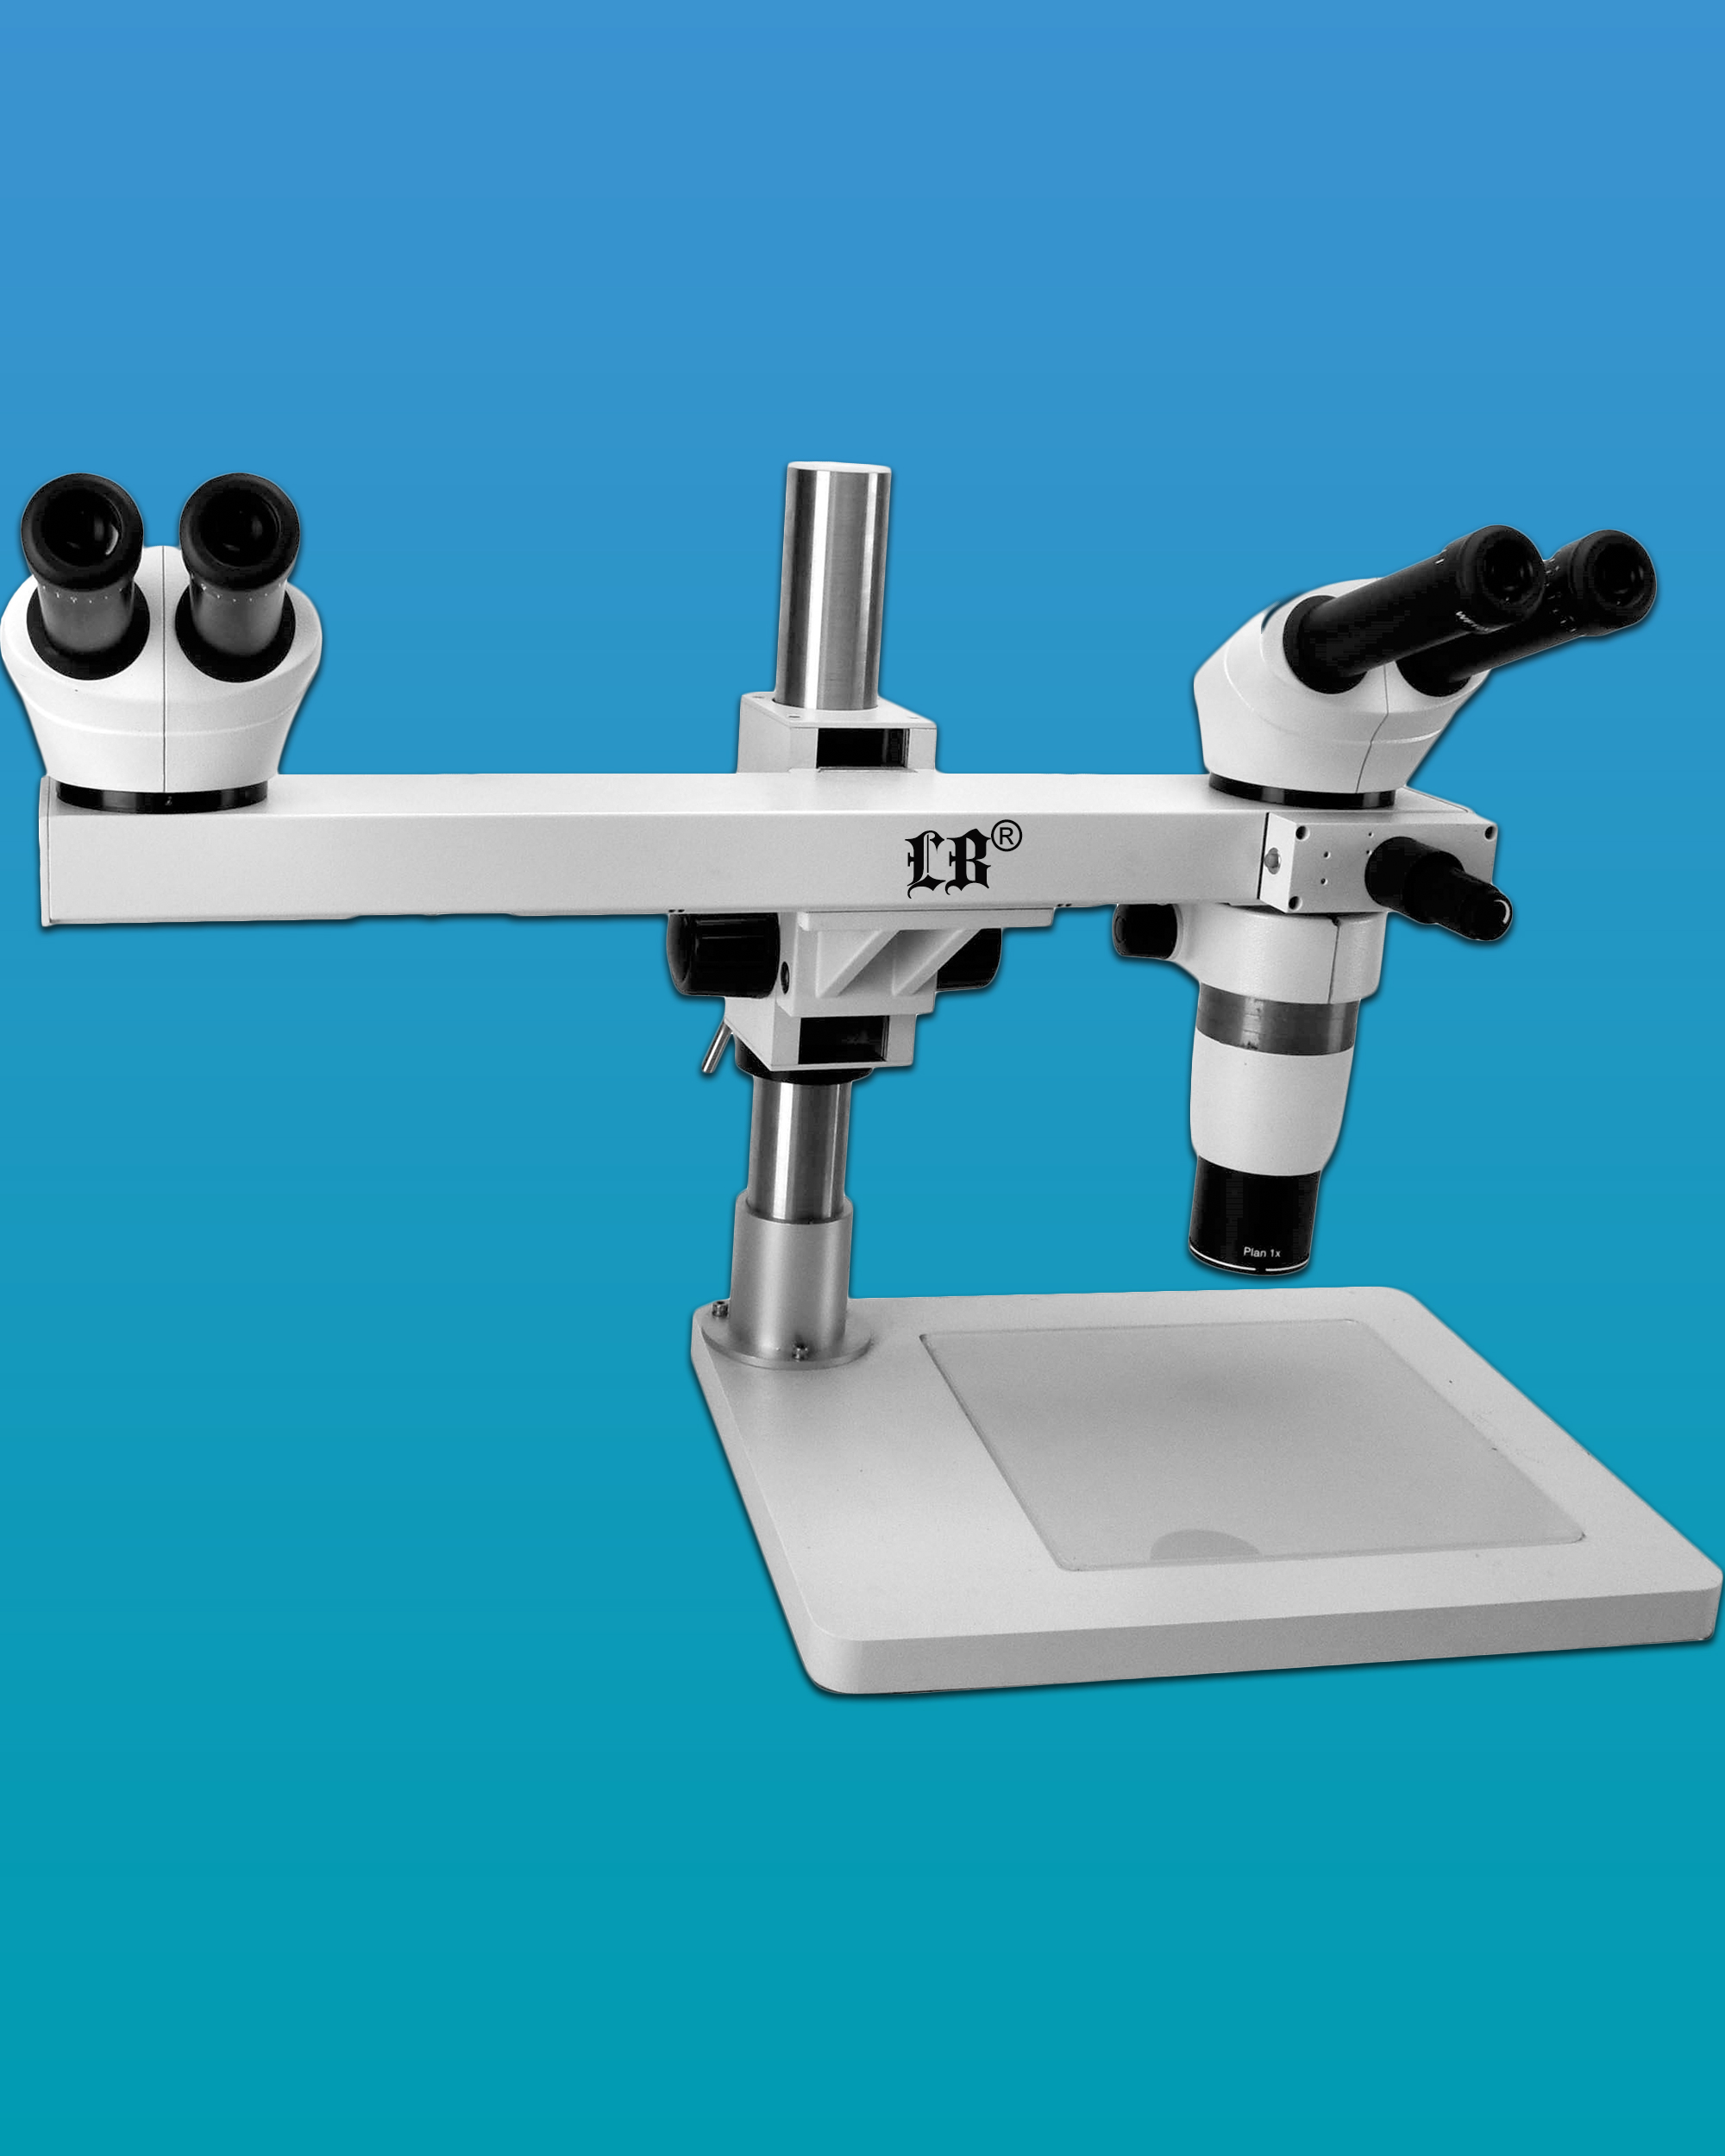 [LB-373] Dual Viewing Head Zoom Stereo Teaching Microscope w/ Infinity Parallel Optical System